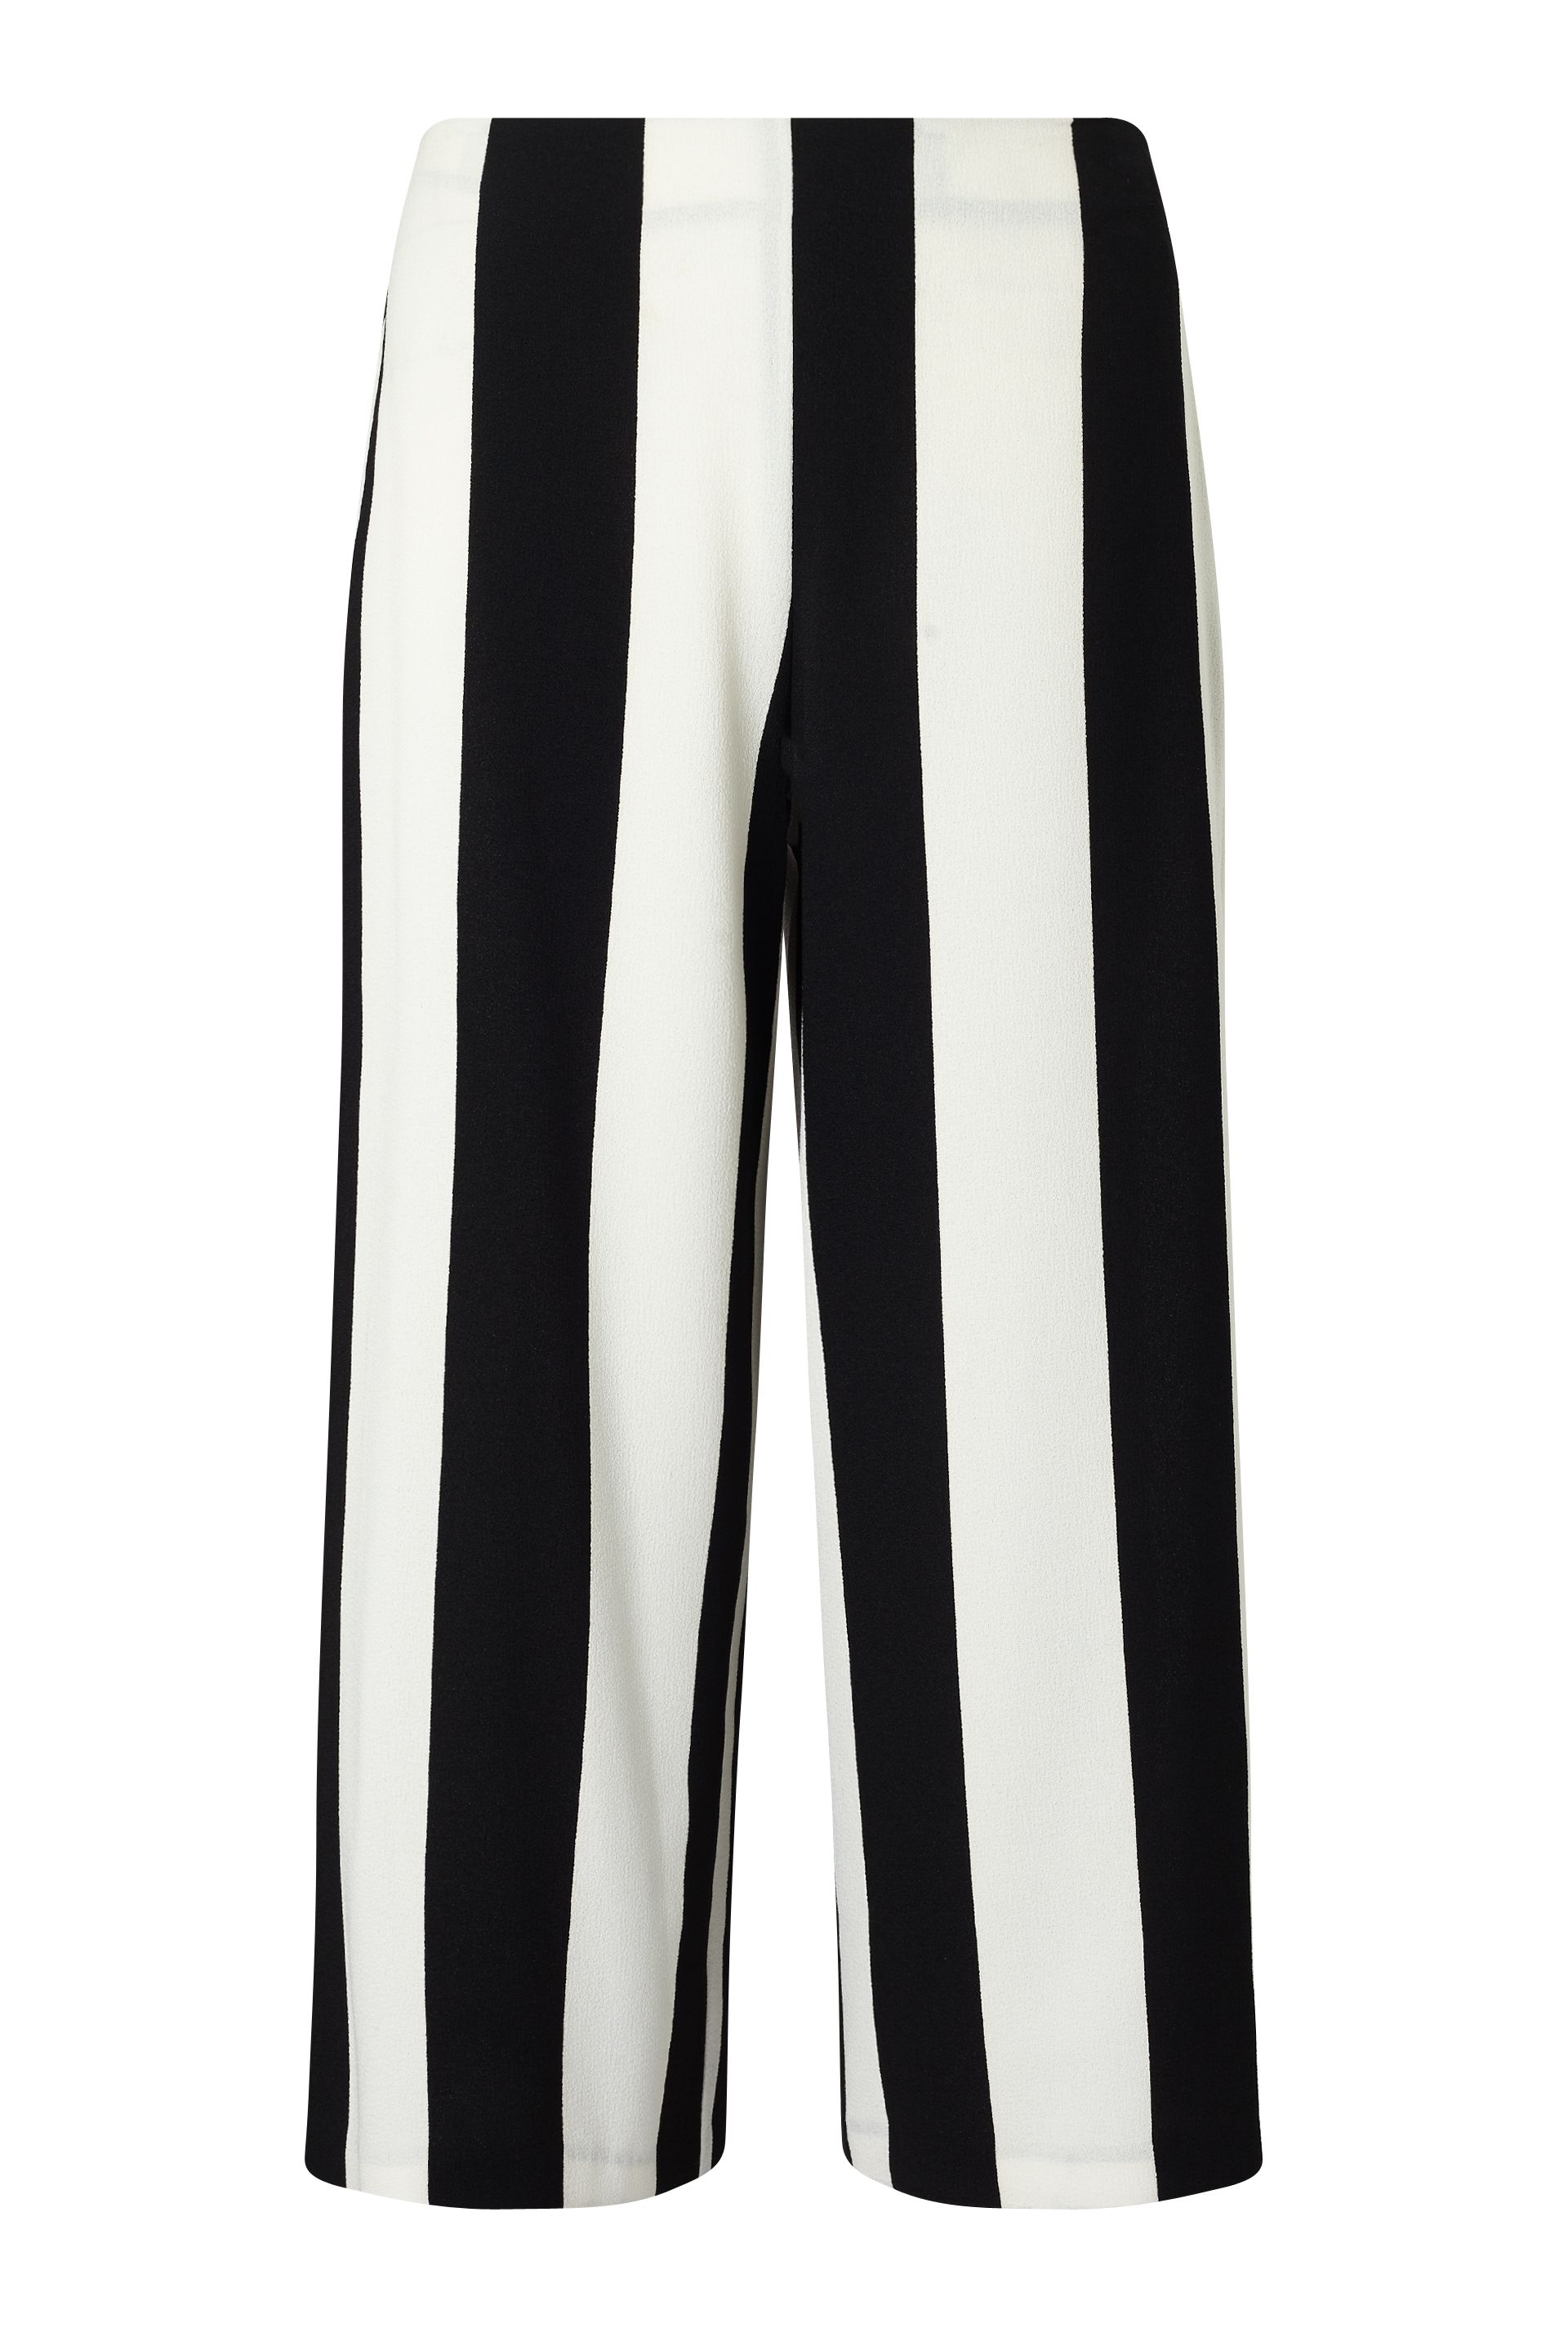 James Lakeland Monochrome Stripe Culottes, Black